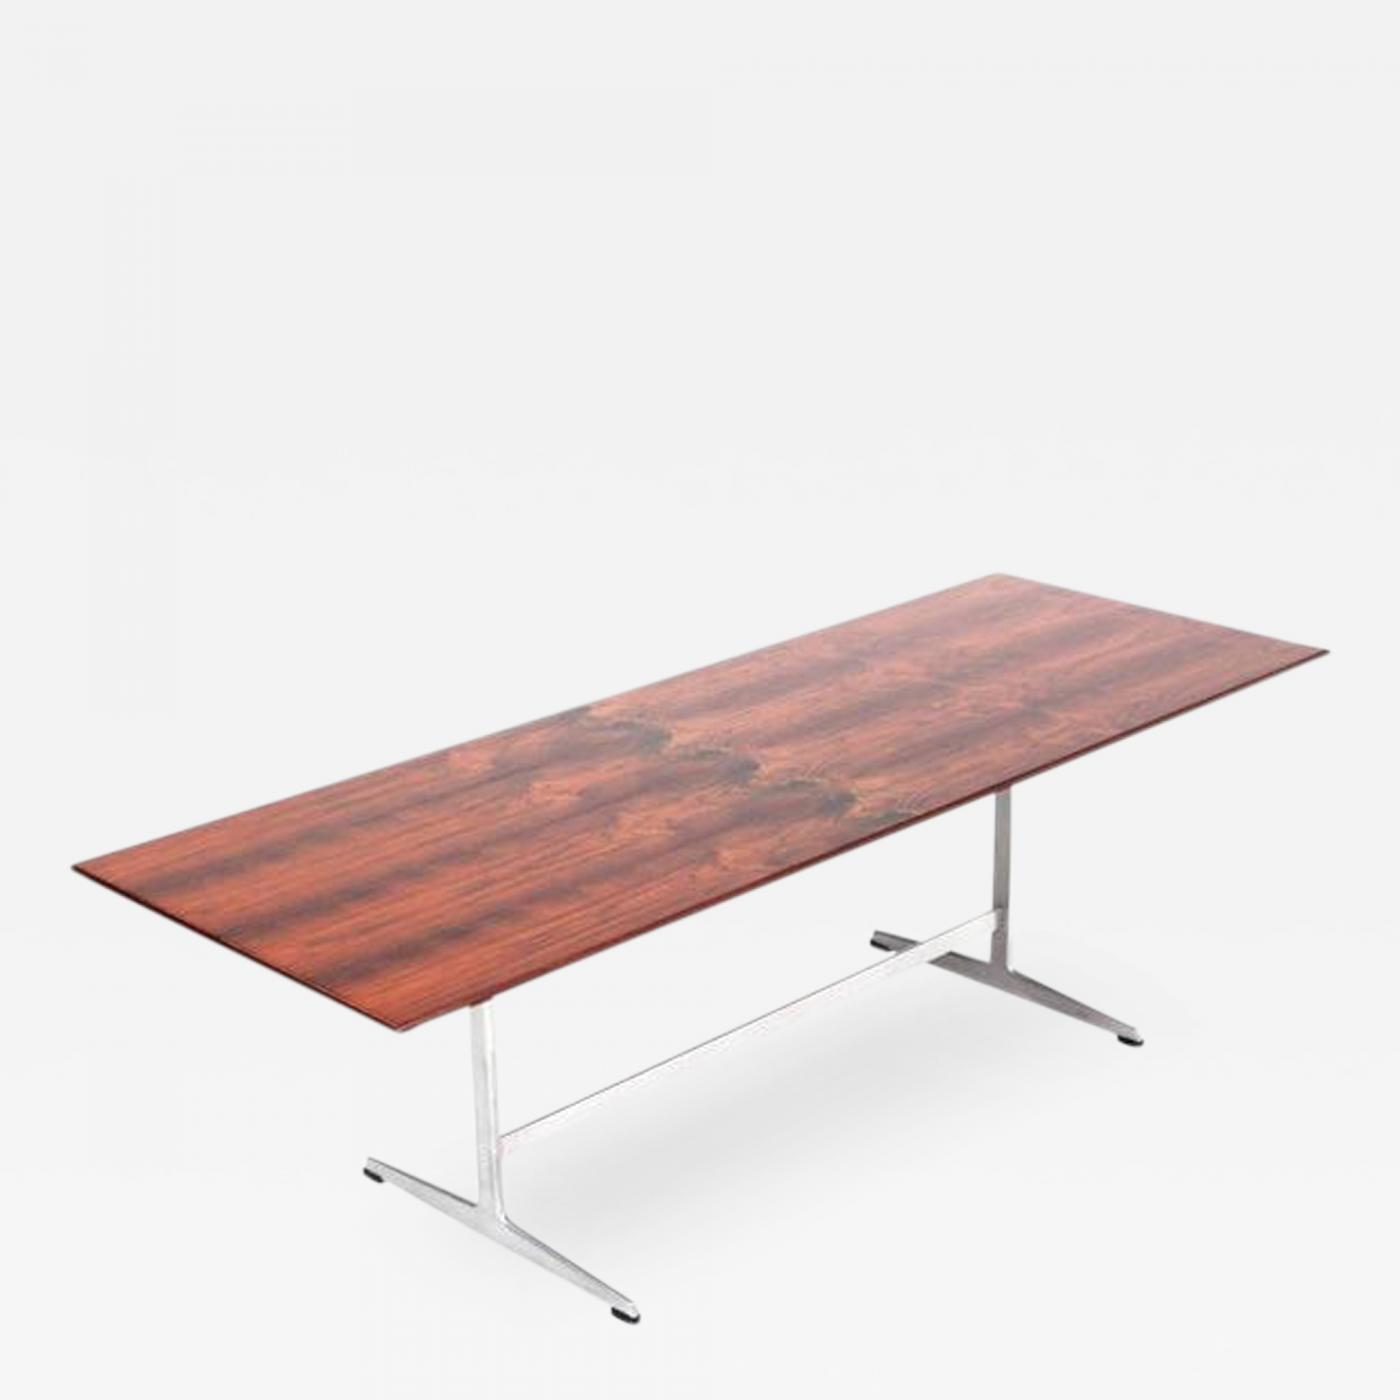 Arne jacobsen arne jacobsen rosewood shaker coffee table listings furniture tables coffee tables geotapseo Images